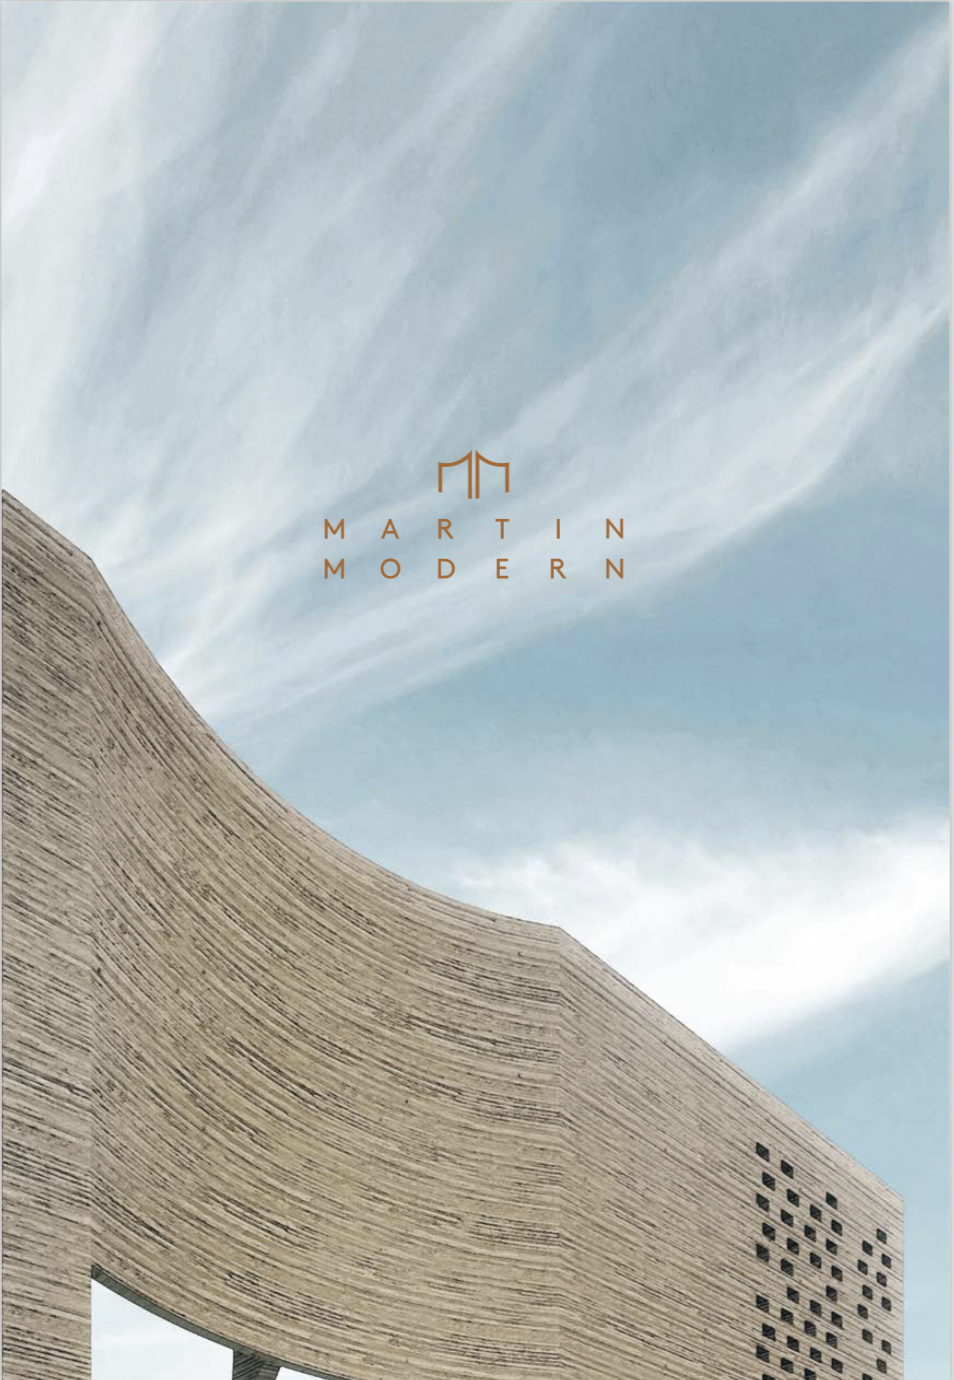 martin-modern-ebrochure-singapore-condo-new-launch-official-guocoland-district-9